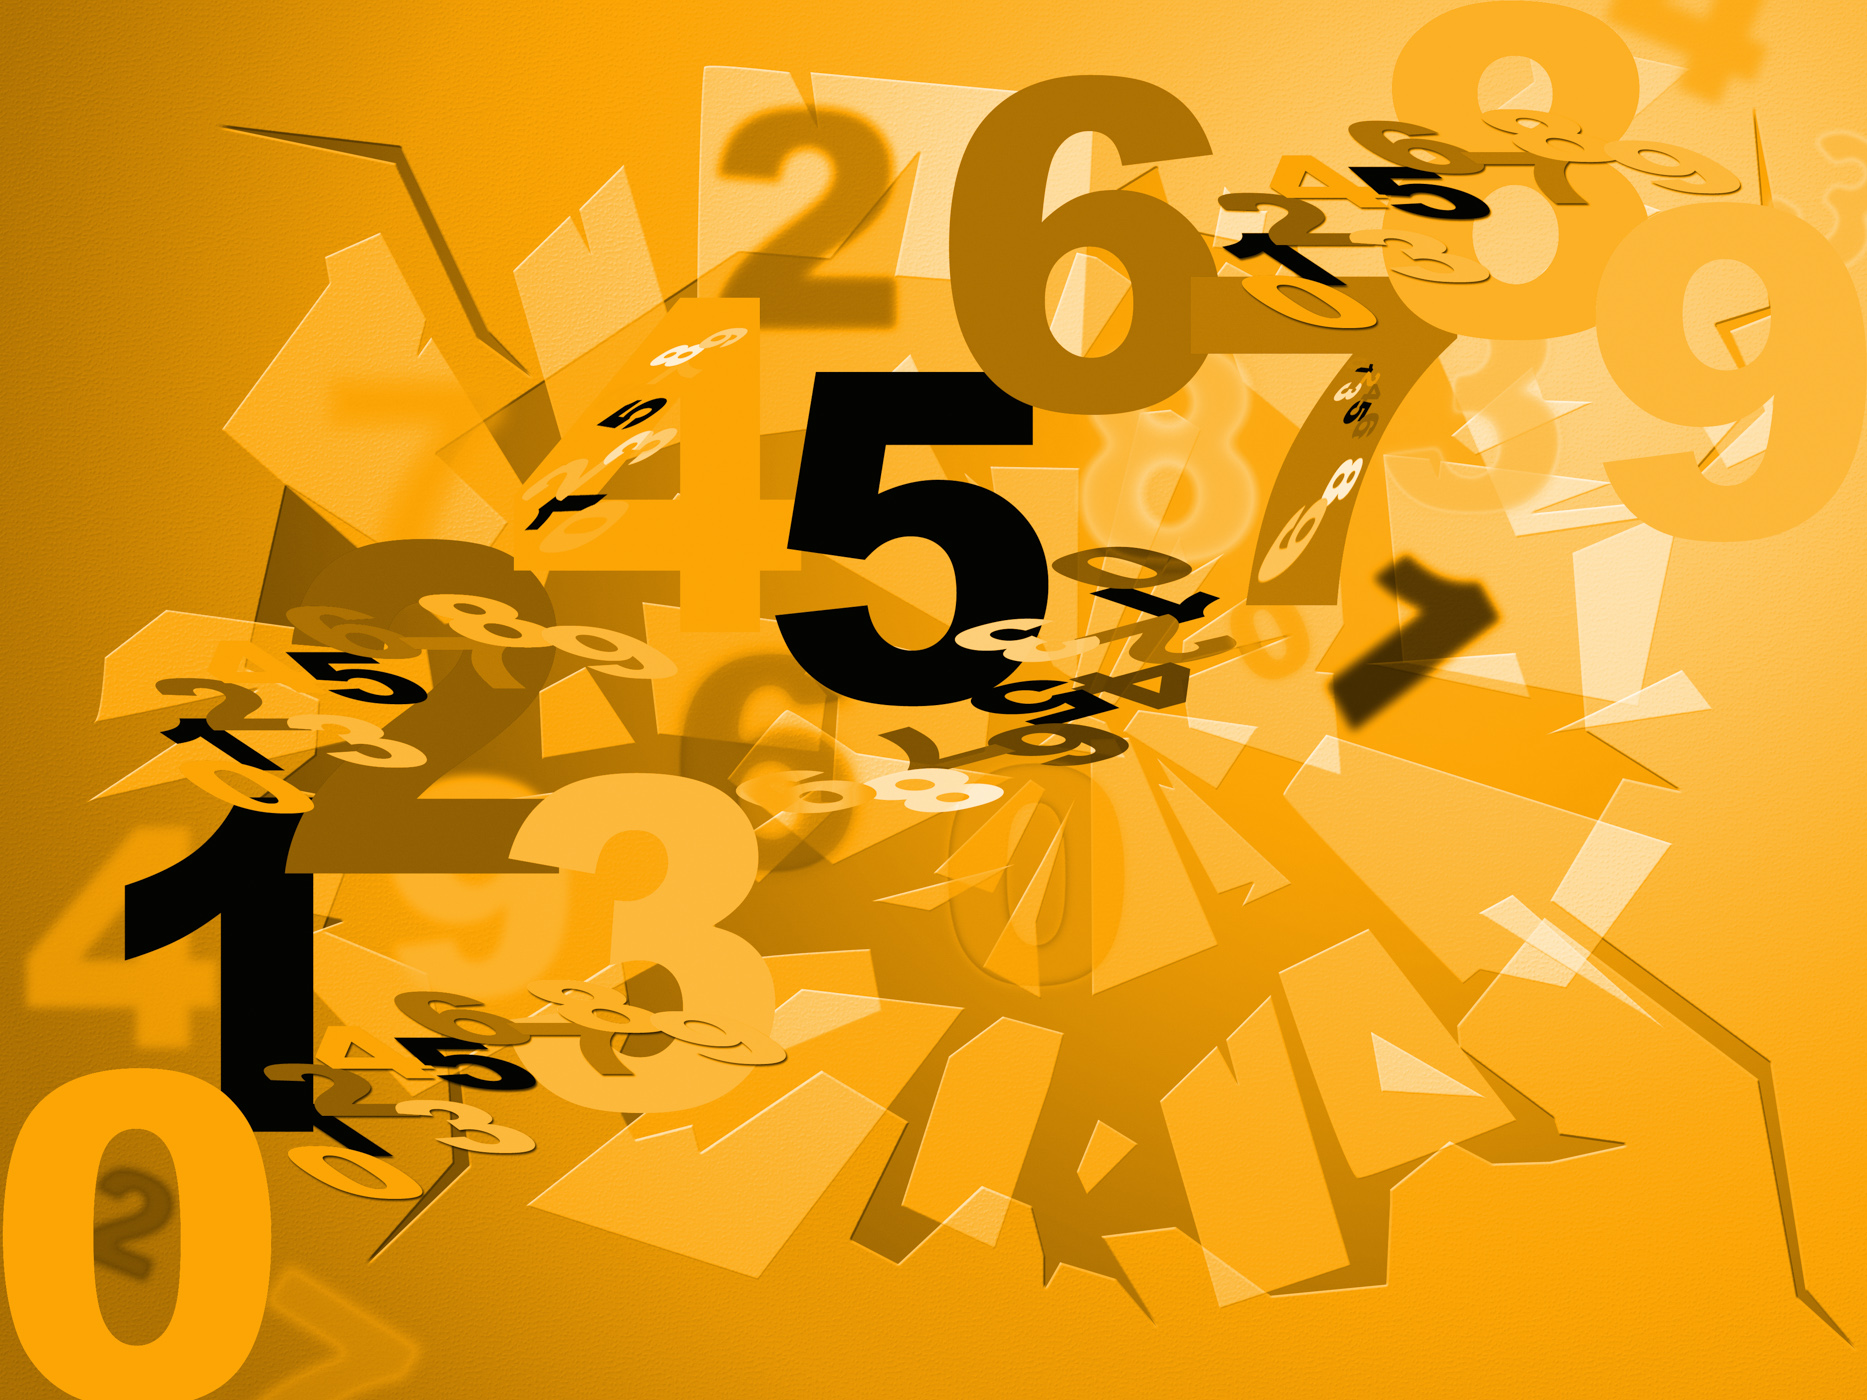 Maths Numbers Shows Numerical Numerals And Design, Abstract, Numbers, Numerical, Numeric, HQ Photo